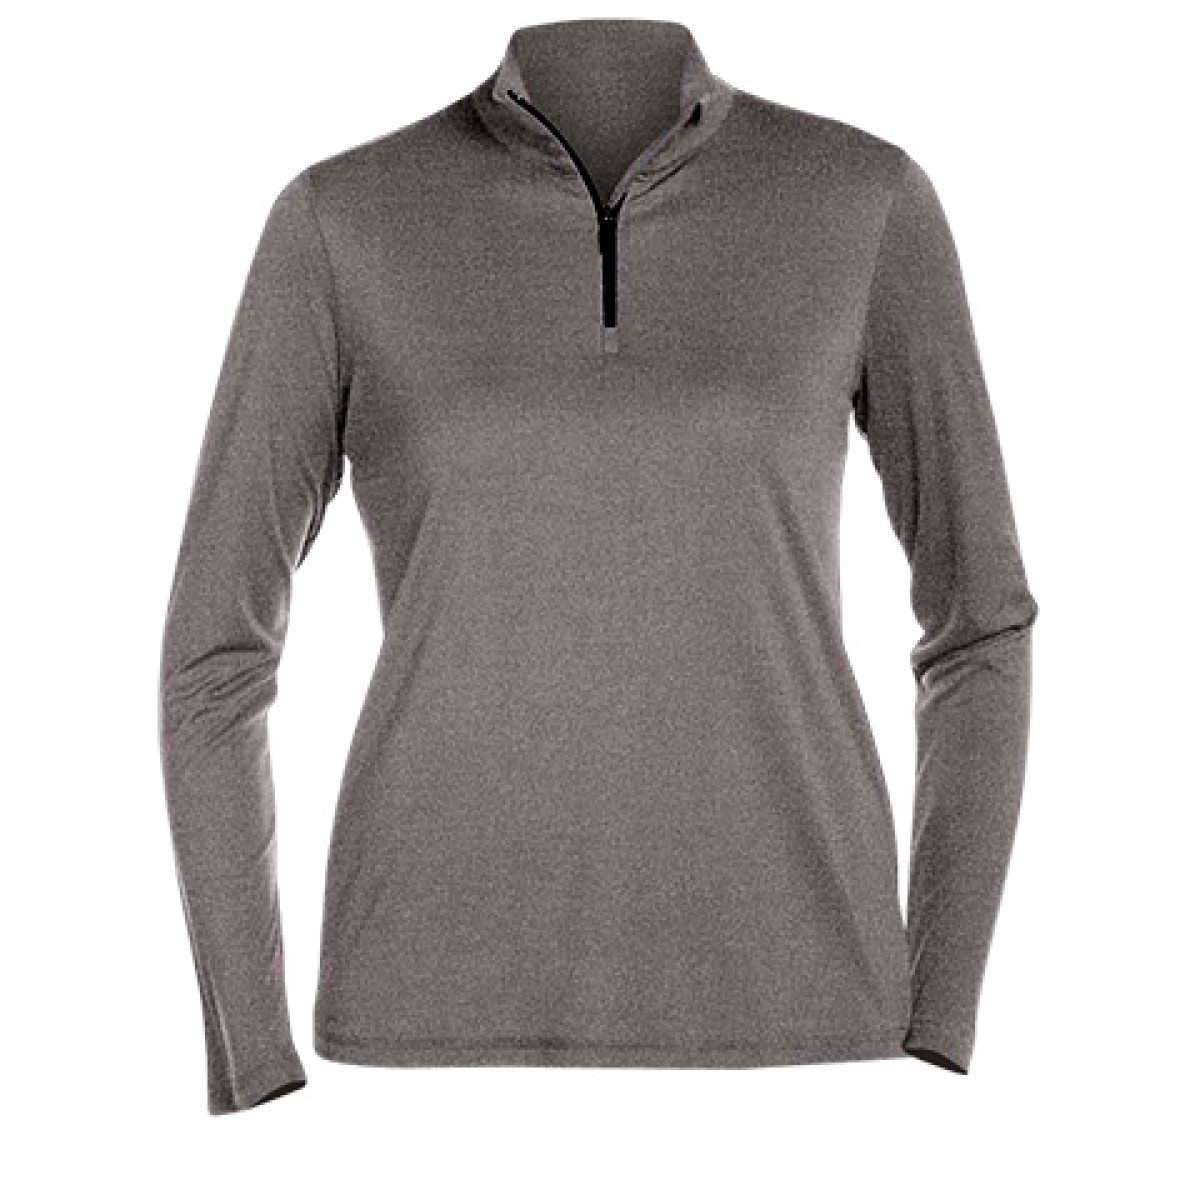 Ladies' Quarter-Zip Lightweight Pullover-Sports Grey-XL